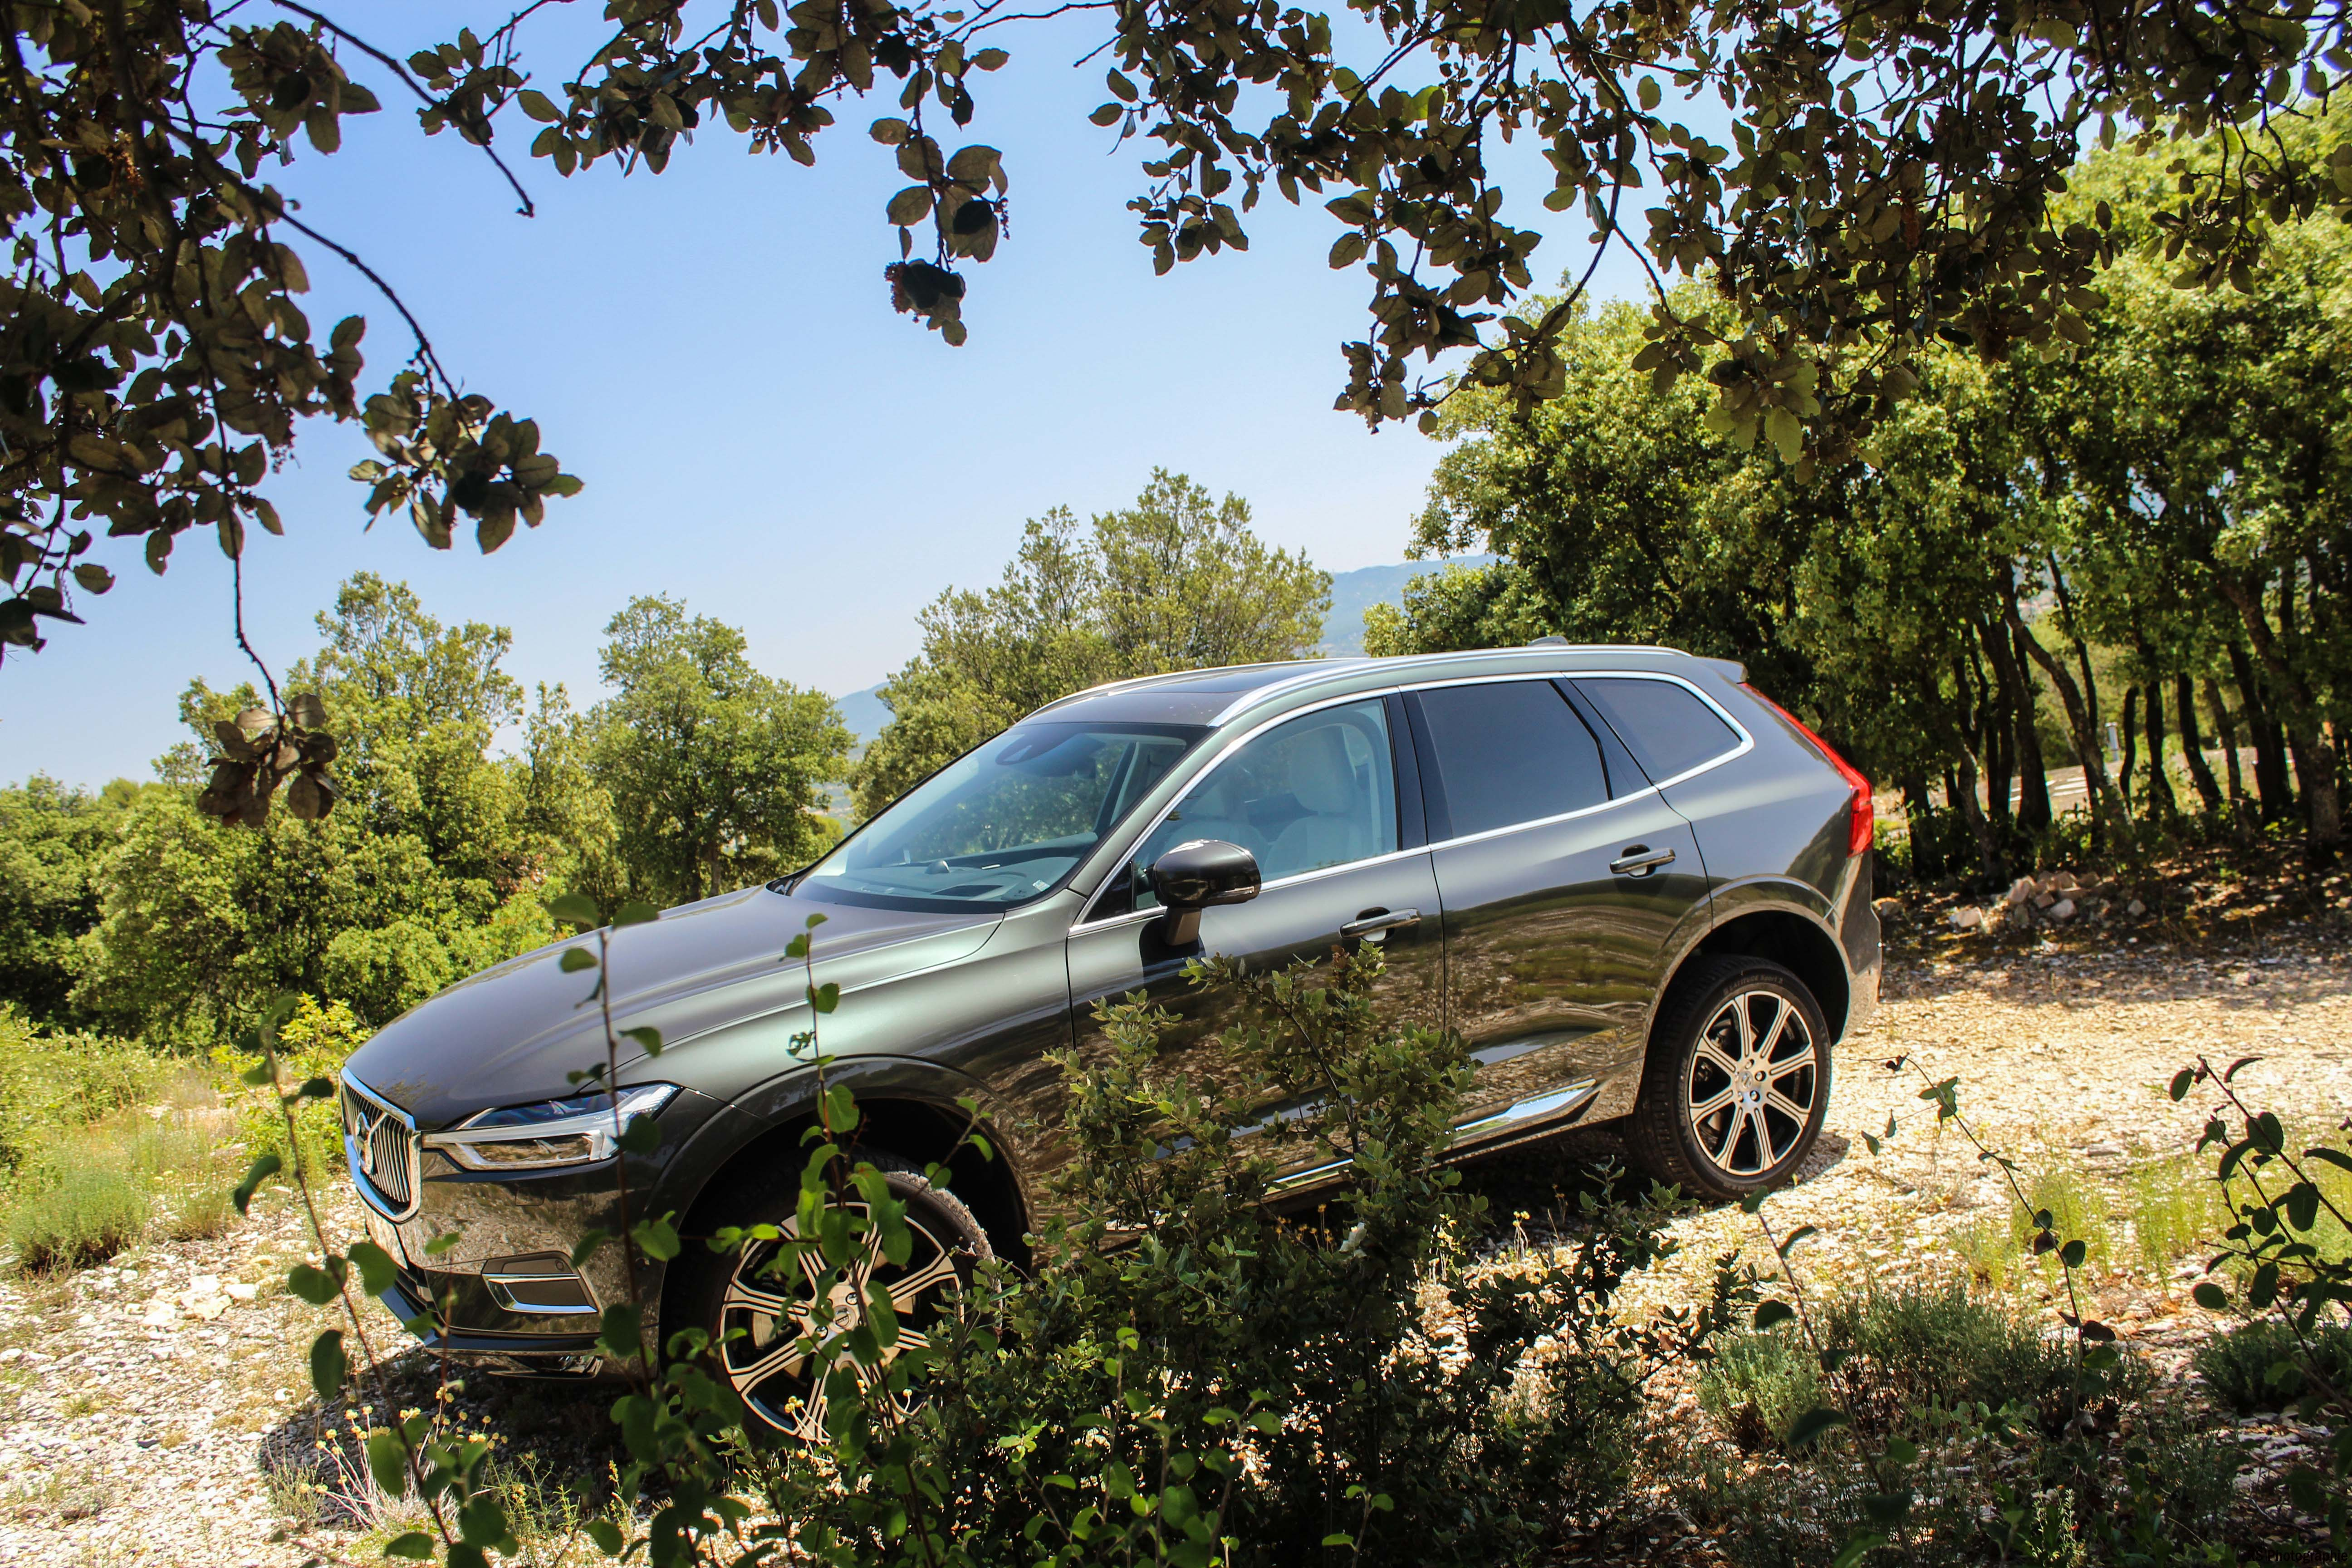 OpéVolvo35-volvo-xc60-avant-front-Arnaud Demasier-RSPhotographie